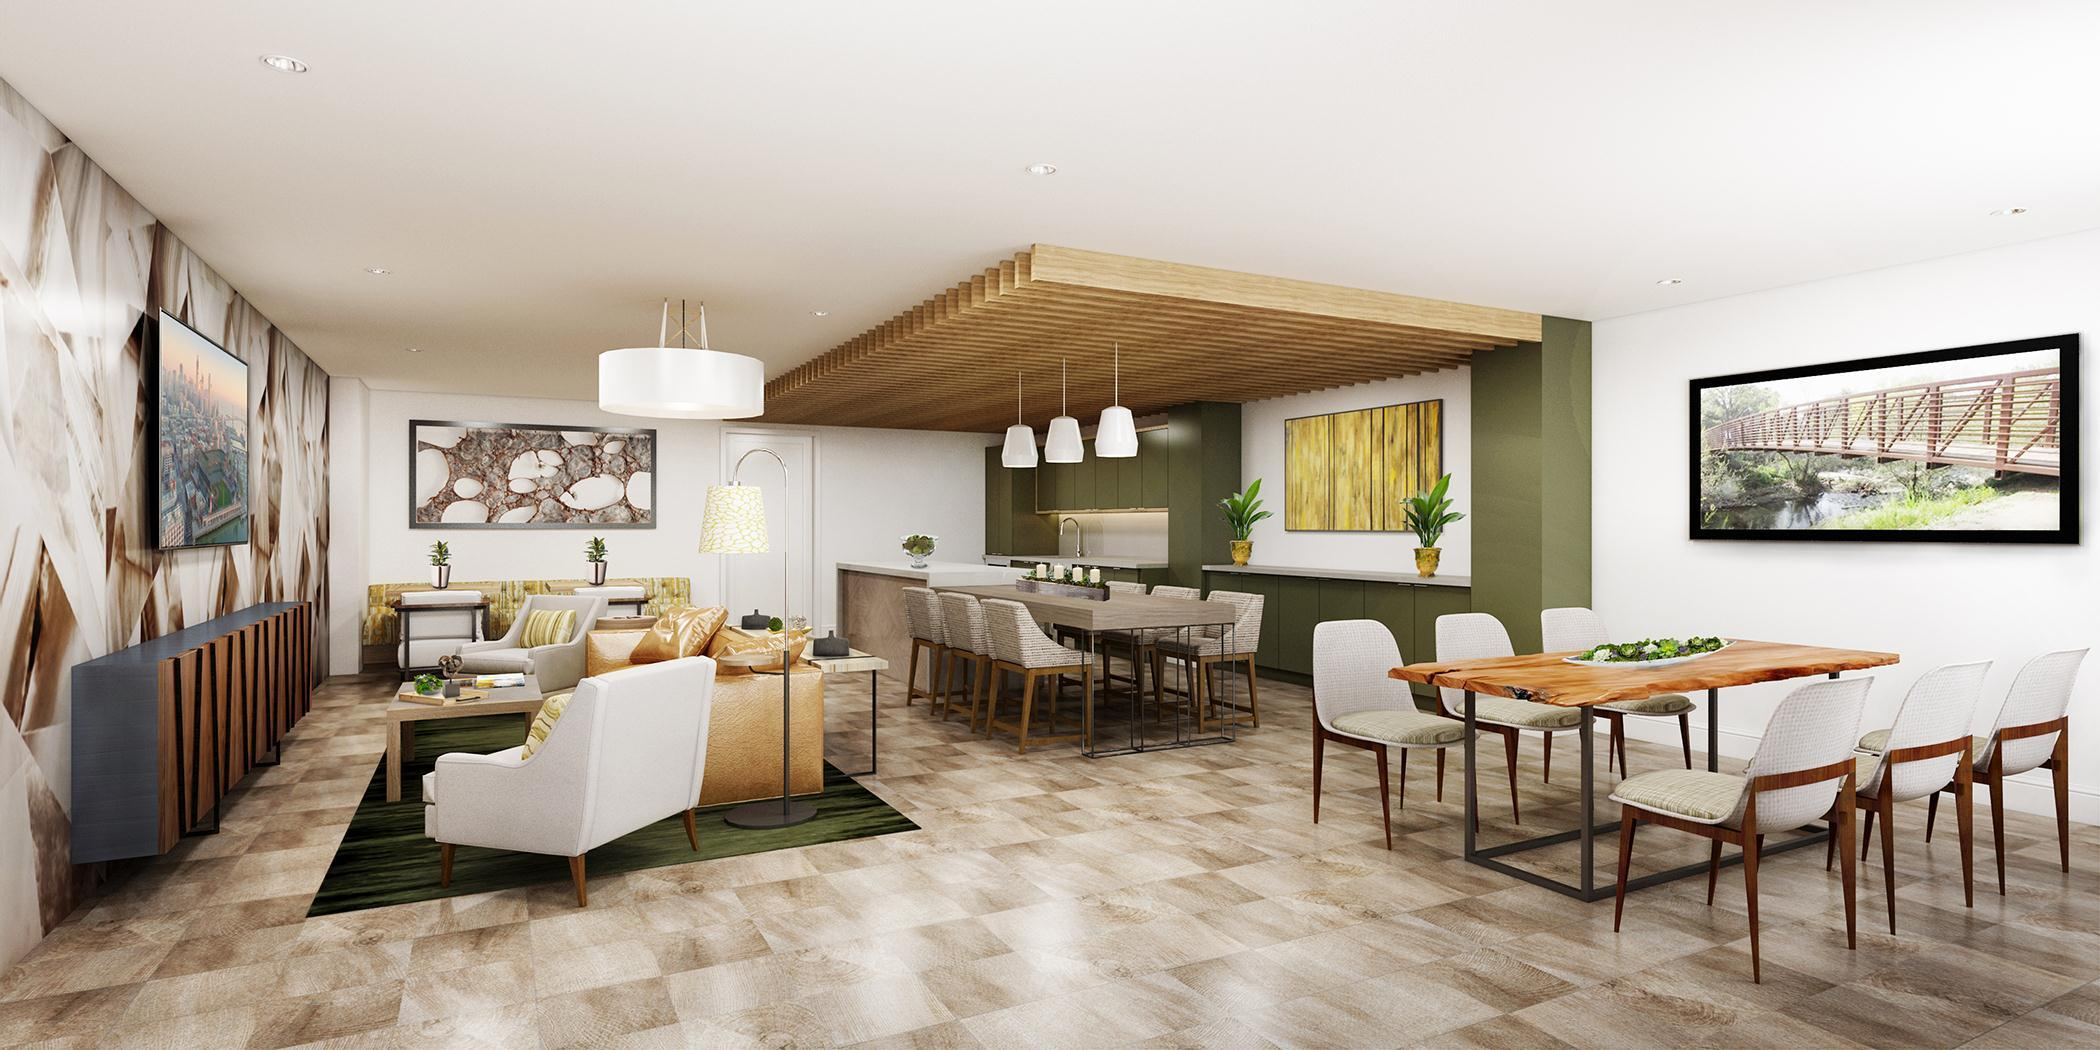 Living Area featured in the Almaden B4 By SiliconSage Builders in San Jose, CA